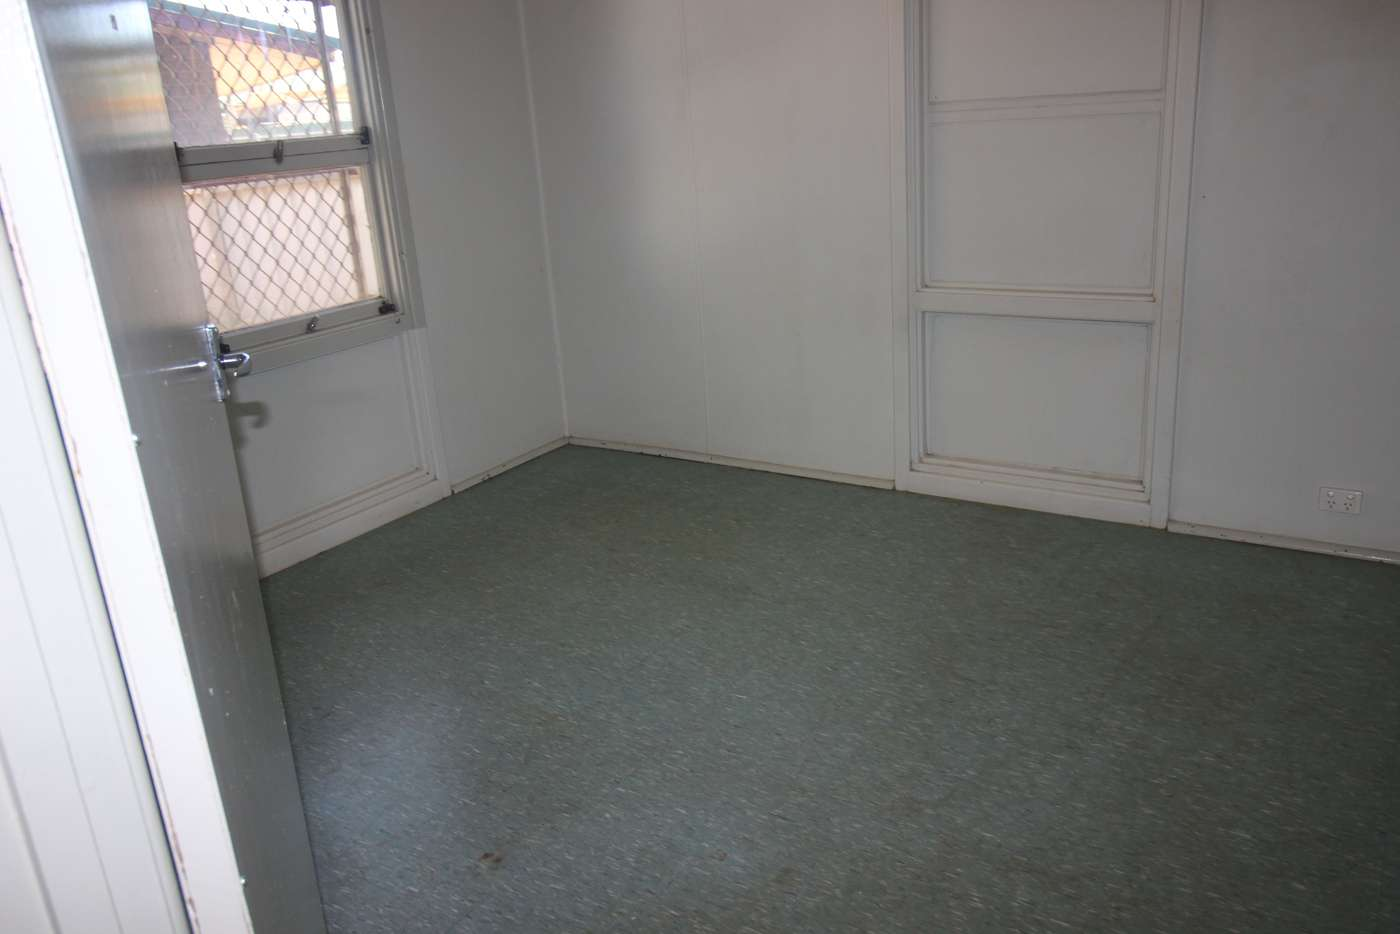 Seventh view of Homely house listing, 14 Draper, South Hedland WA 6722